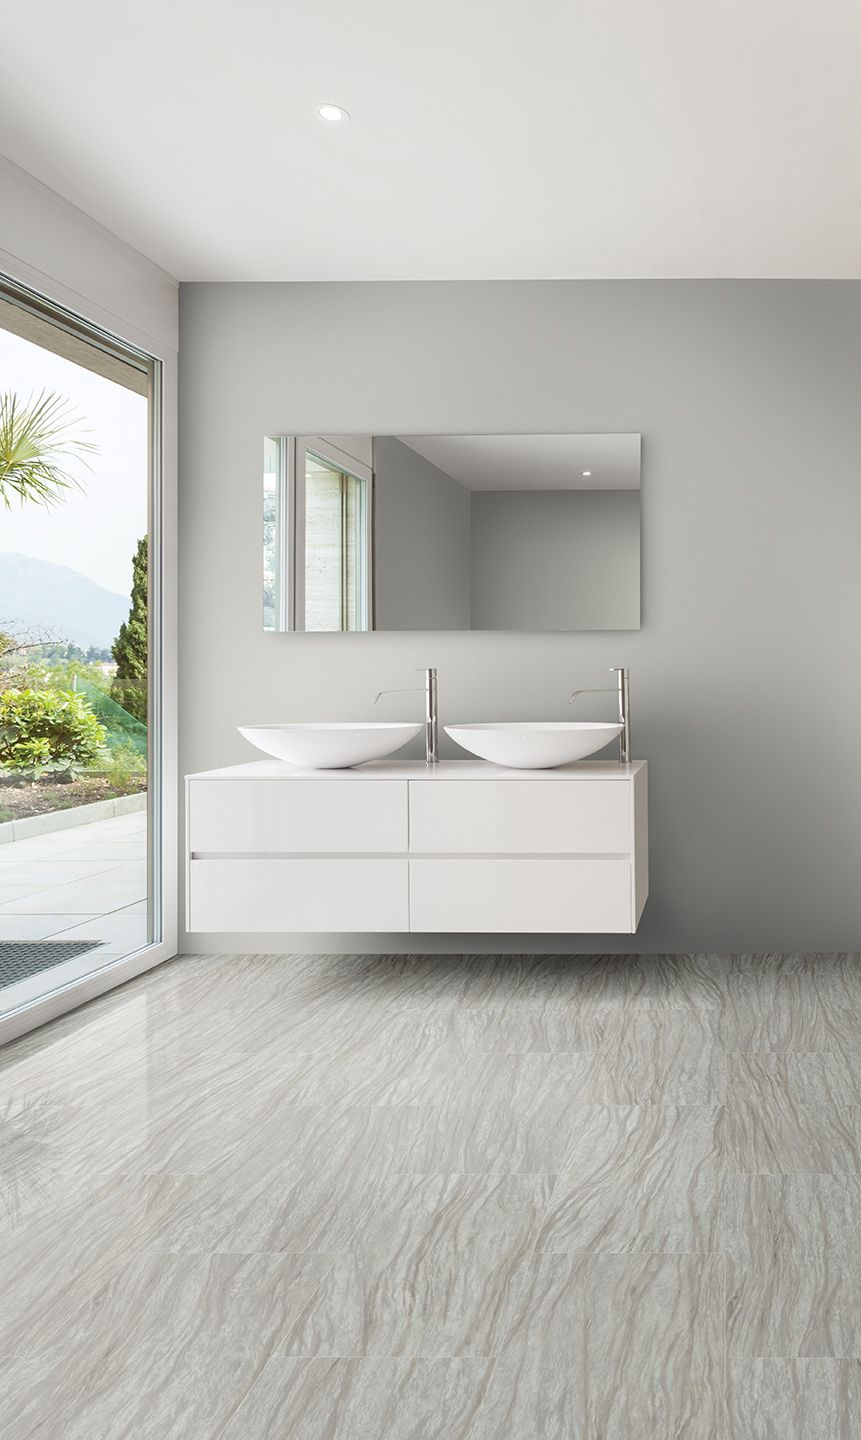 Want The Look Of Tile Without The Chill And Hassle Metroflor Konecto Sierra Tile Is The Perfect Solution With It Lvt Flooring Floor Design Bathrooms Remodel